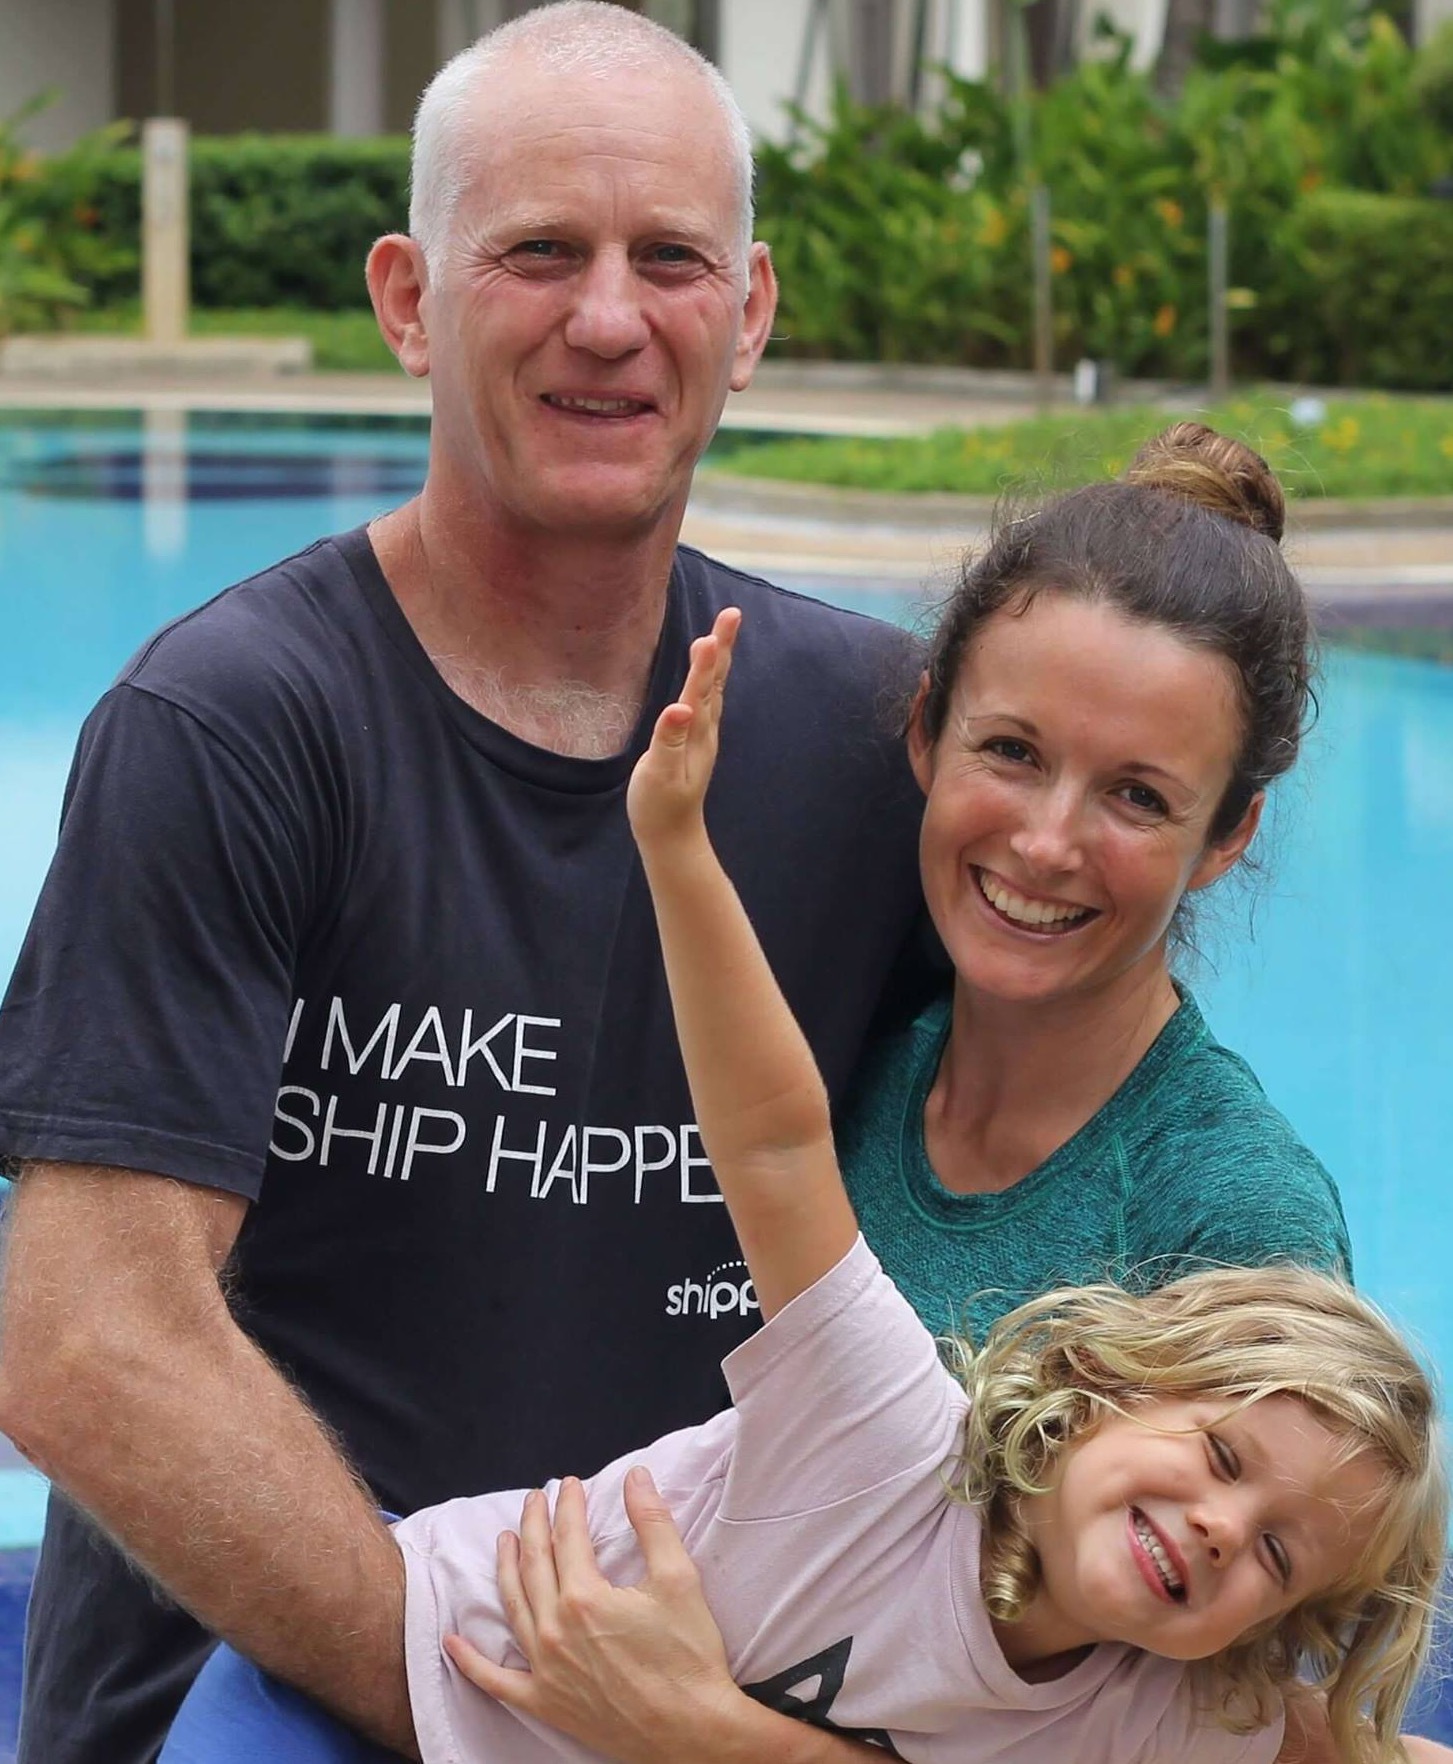 Collin Clapp, New Zealand - world schooling dad, founder of Parenting Passports & Profits